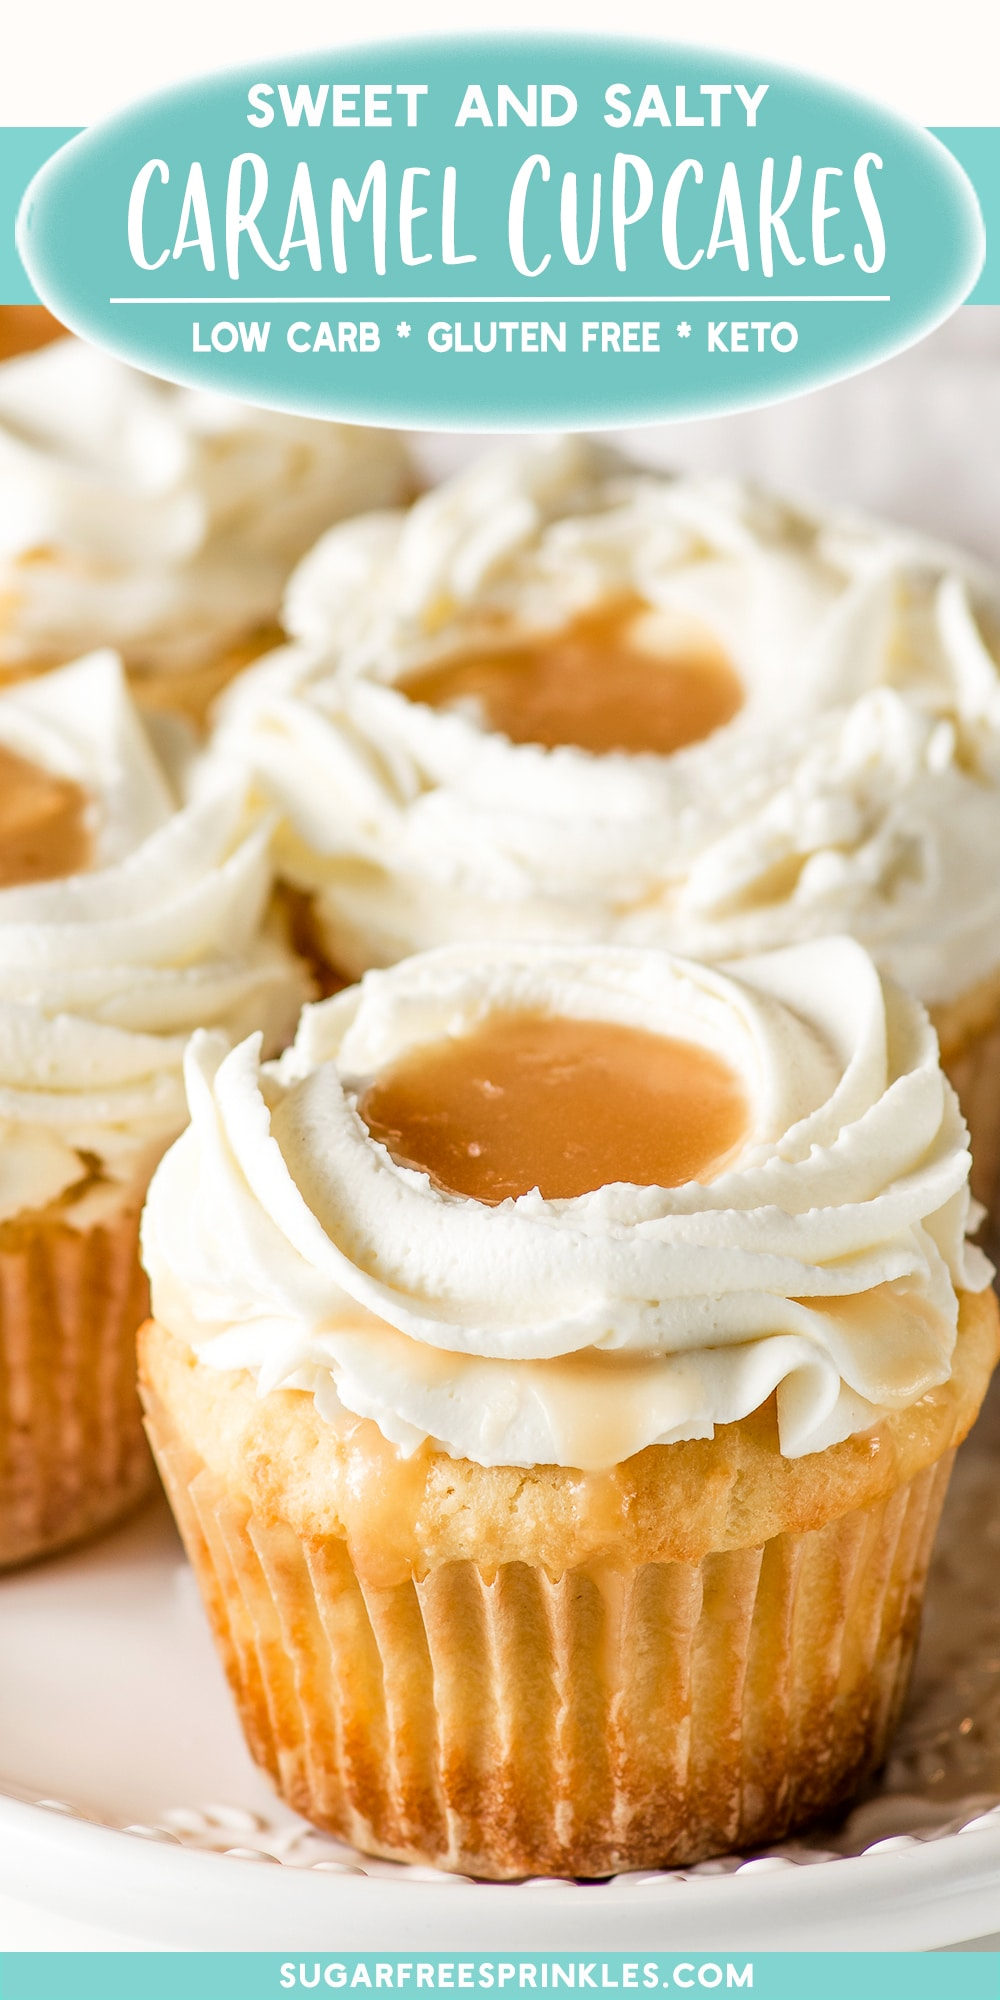 This salted caramel keto cupcake recipe is a sure hit. A sweet vanilla cupcake base, topped with gooey salted caramel and a creamy cream cheese frosting. Hard to believe this recipe is low carb. No grains or added refined sugars these low carb cupcakes are gluten-free and have less than 5 carbs per serving. #ketocupcake #lowcarbcupcake #lowcarbdessserts #ketodesserts